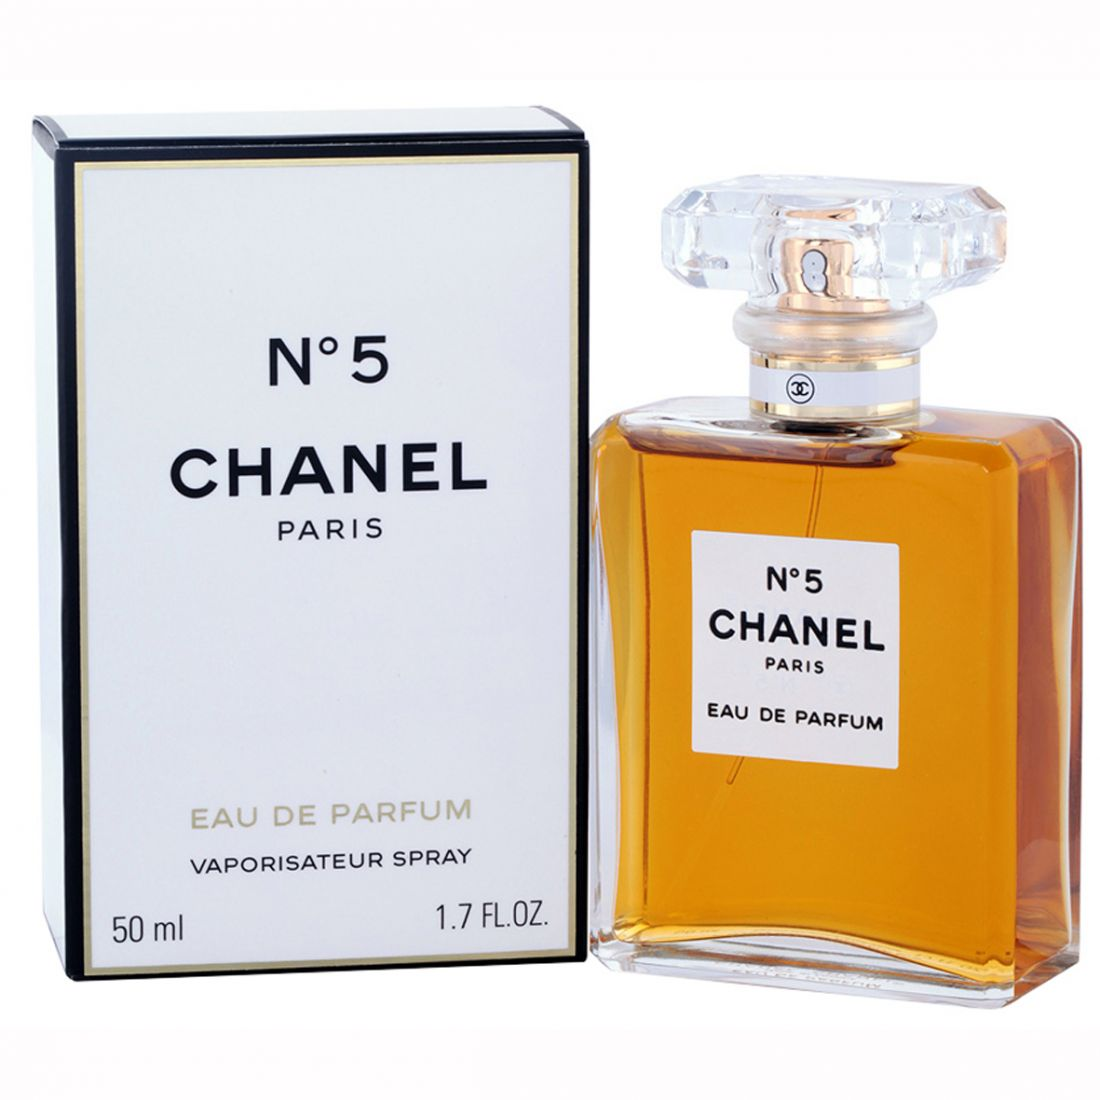 Chanel - No. 5 Premiere, 50 ml